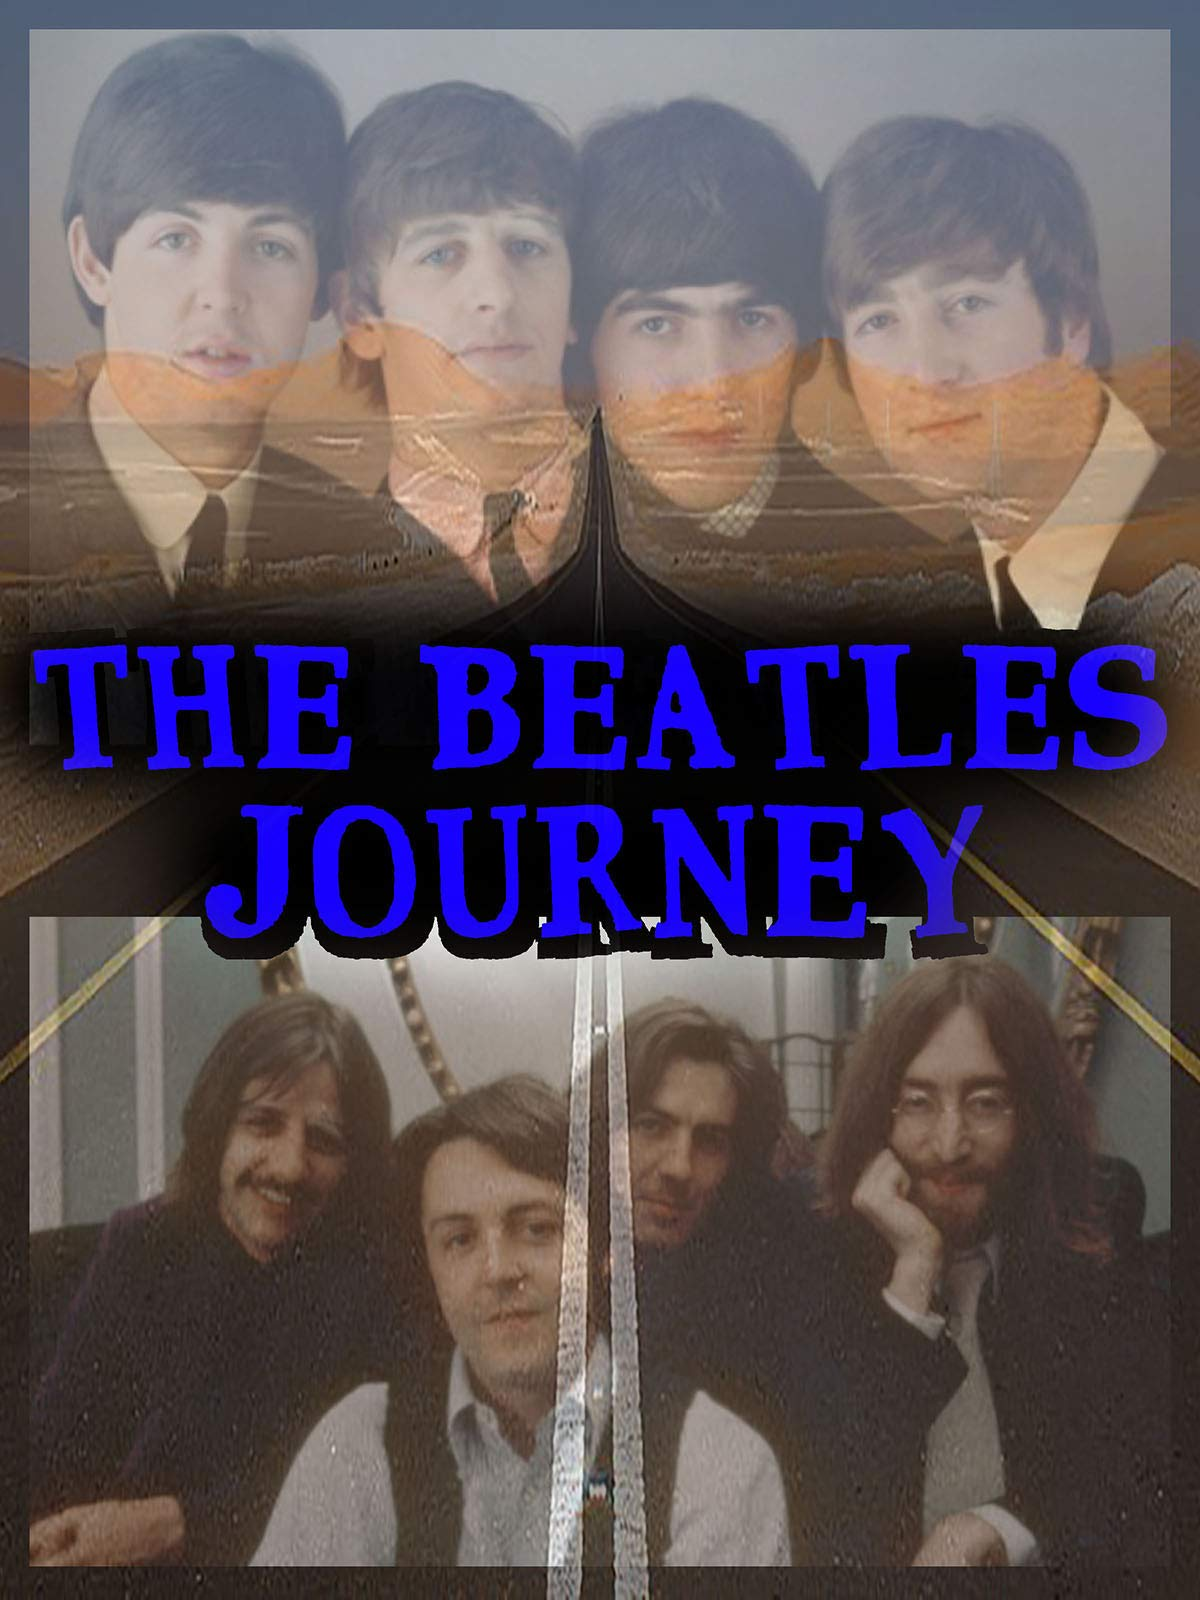 The Beatles Journey